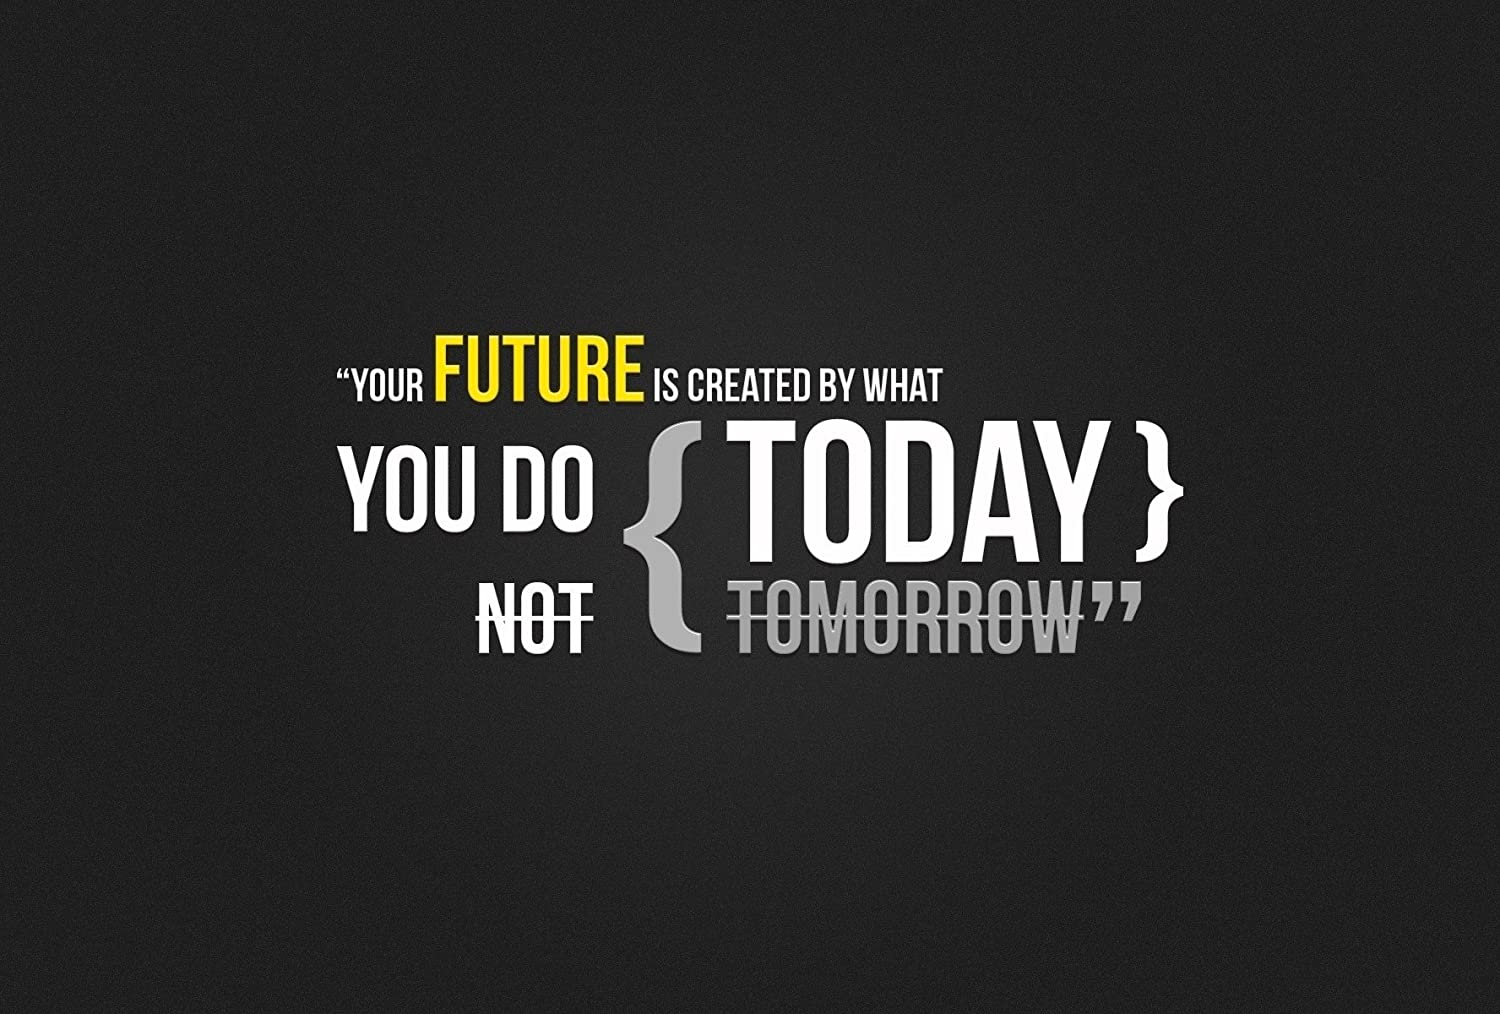 [Image] The future is created by what you do today, not tomorrow.